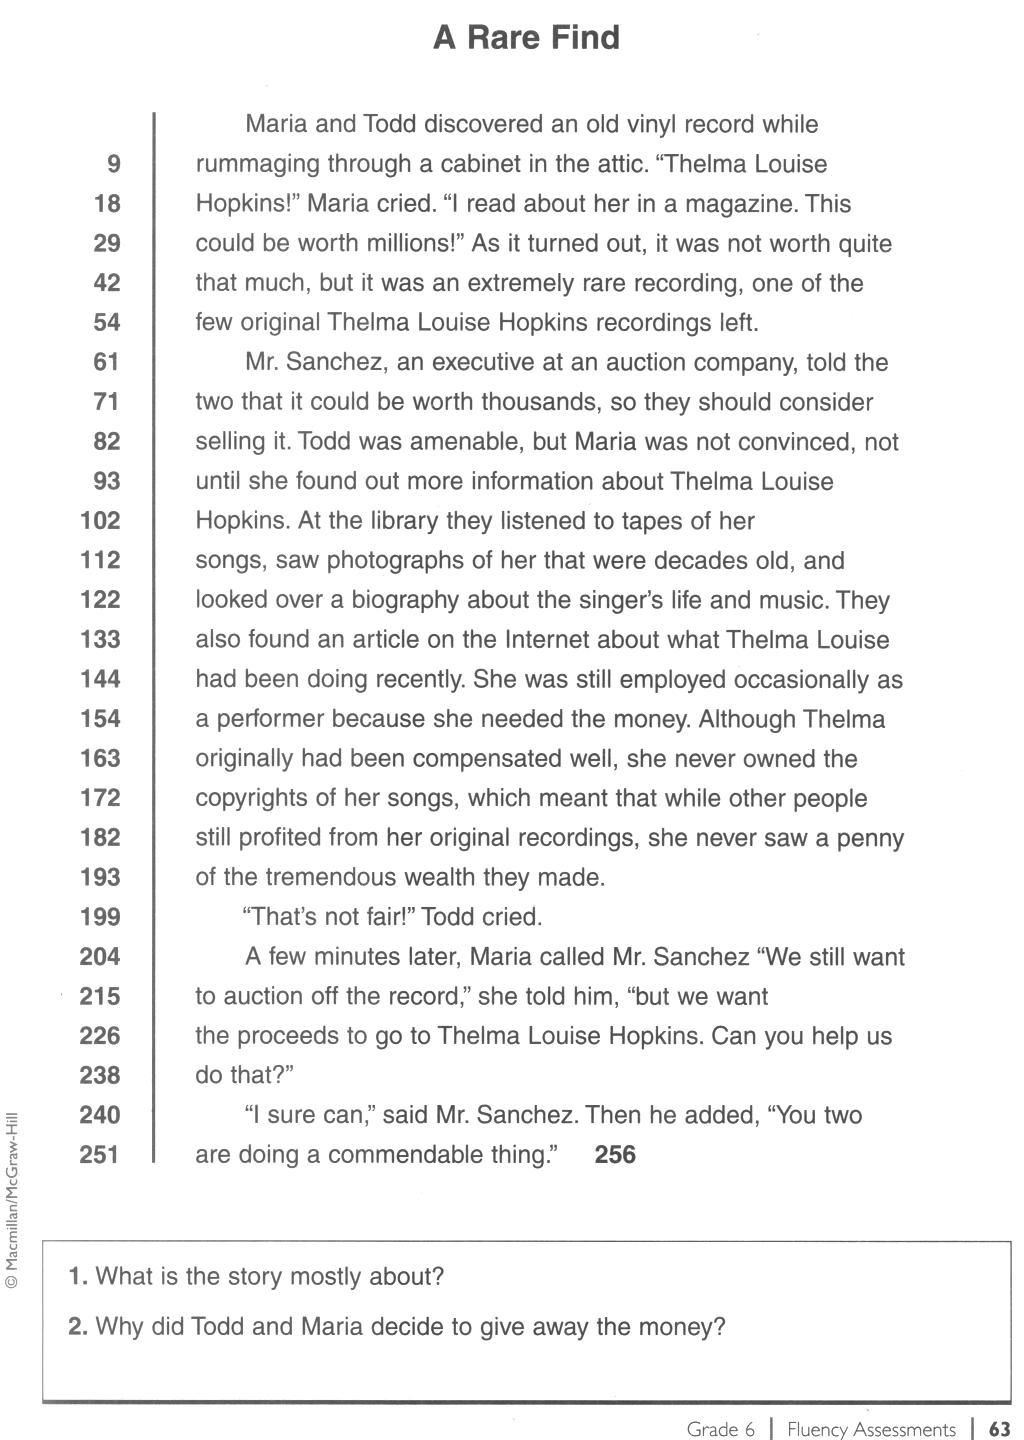 Reading Comprehension Worksheets 6th Grade 6th Fluency Passage 10 1024—1440